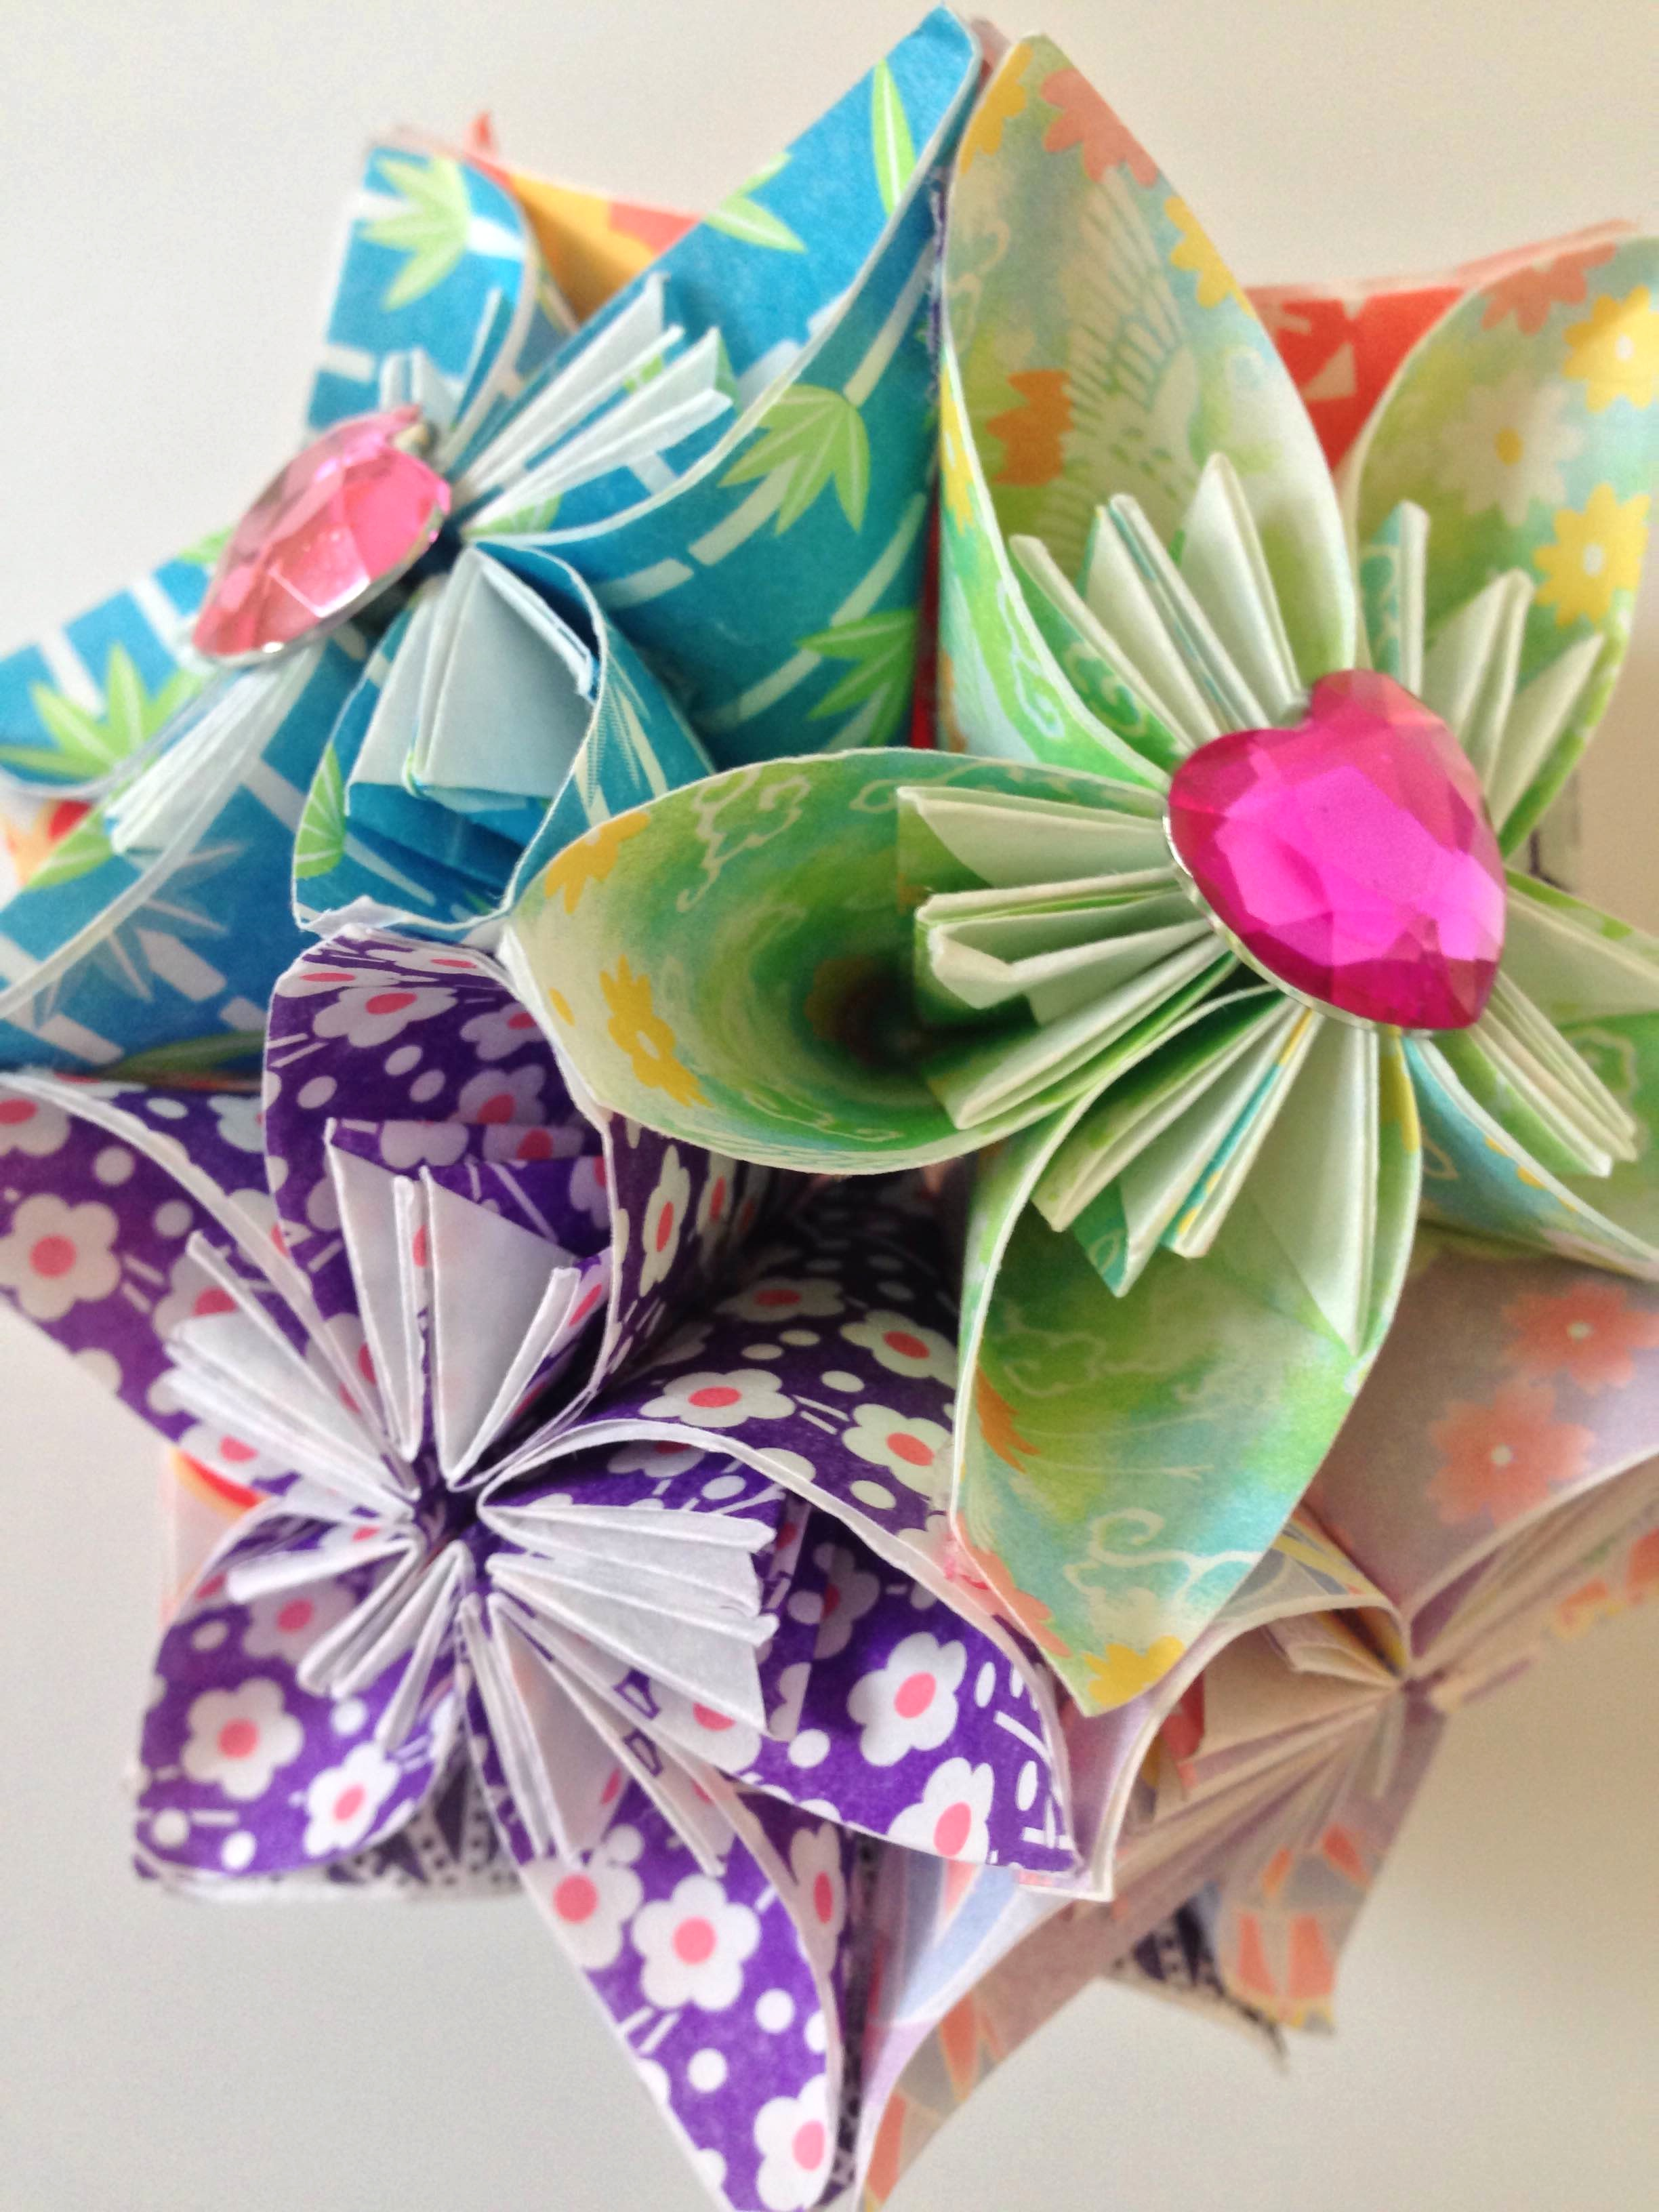 Were Very Excited To Now Be Hosting Origami Making Hen Parties You Will All Have Fun Learning How Make Beautiful Kusudama Flowers With Full Guidance